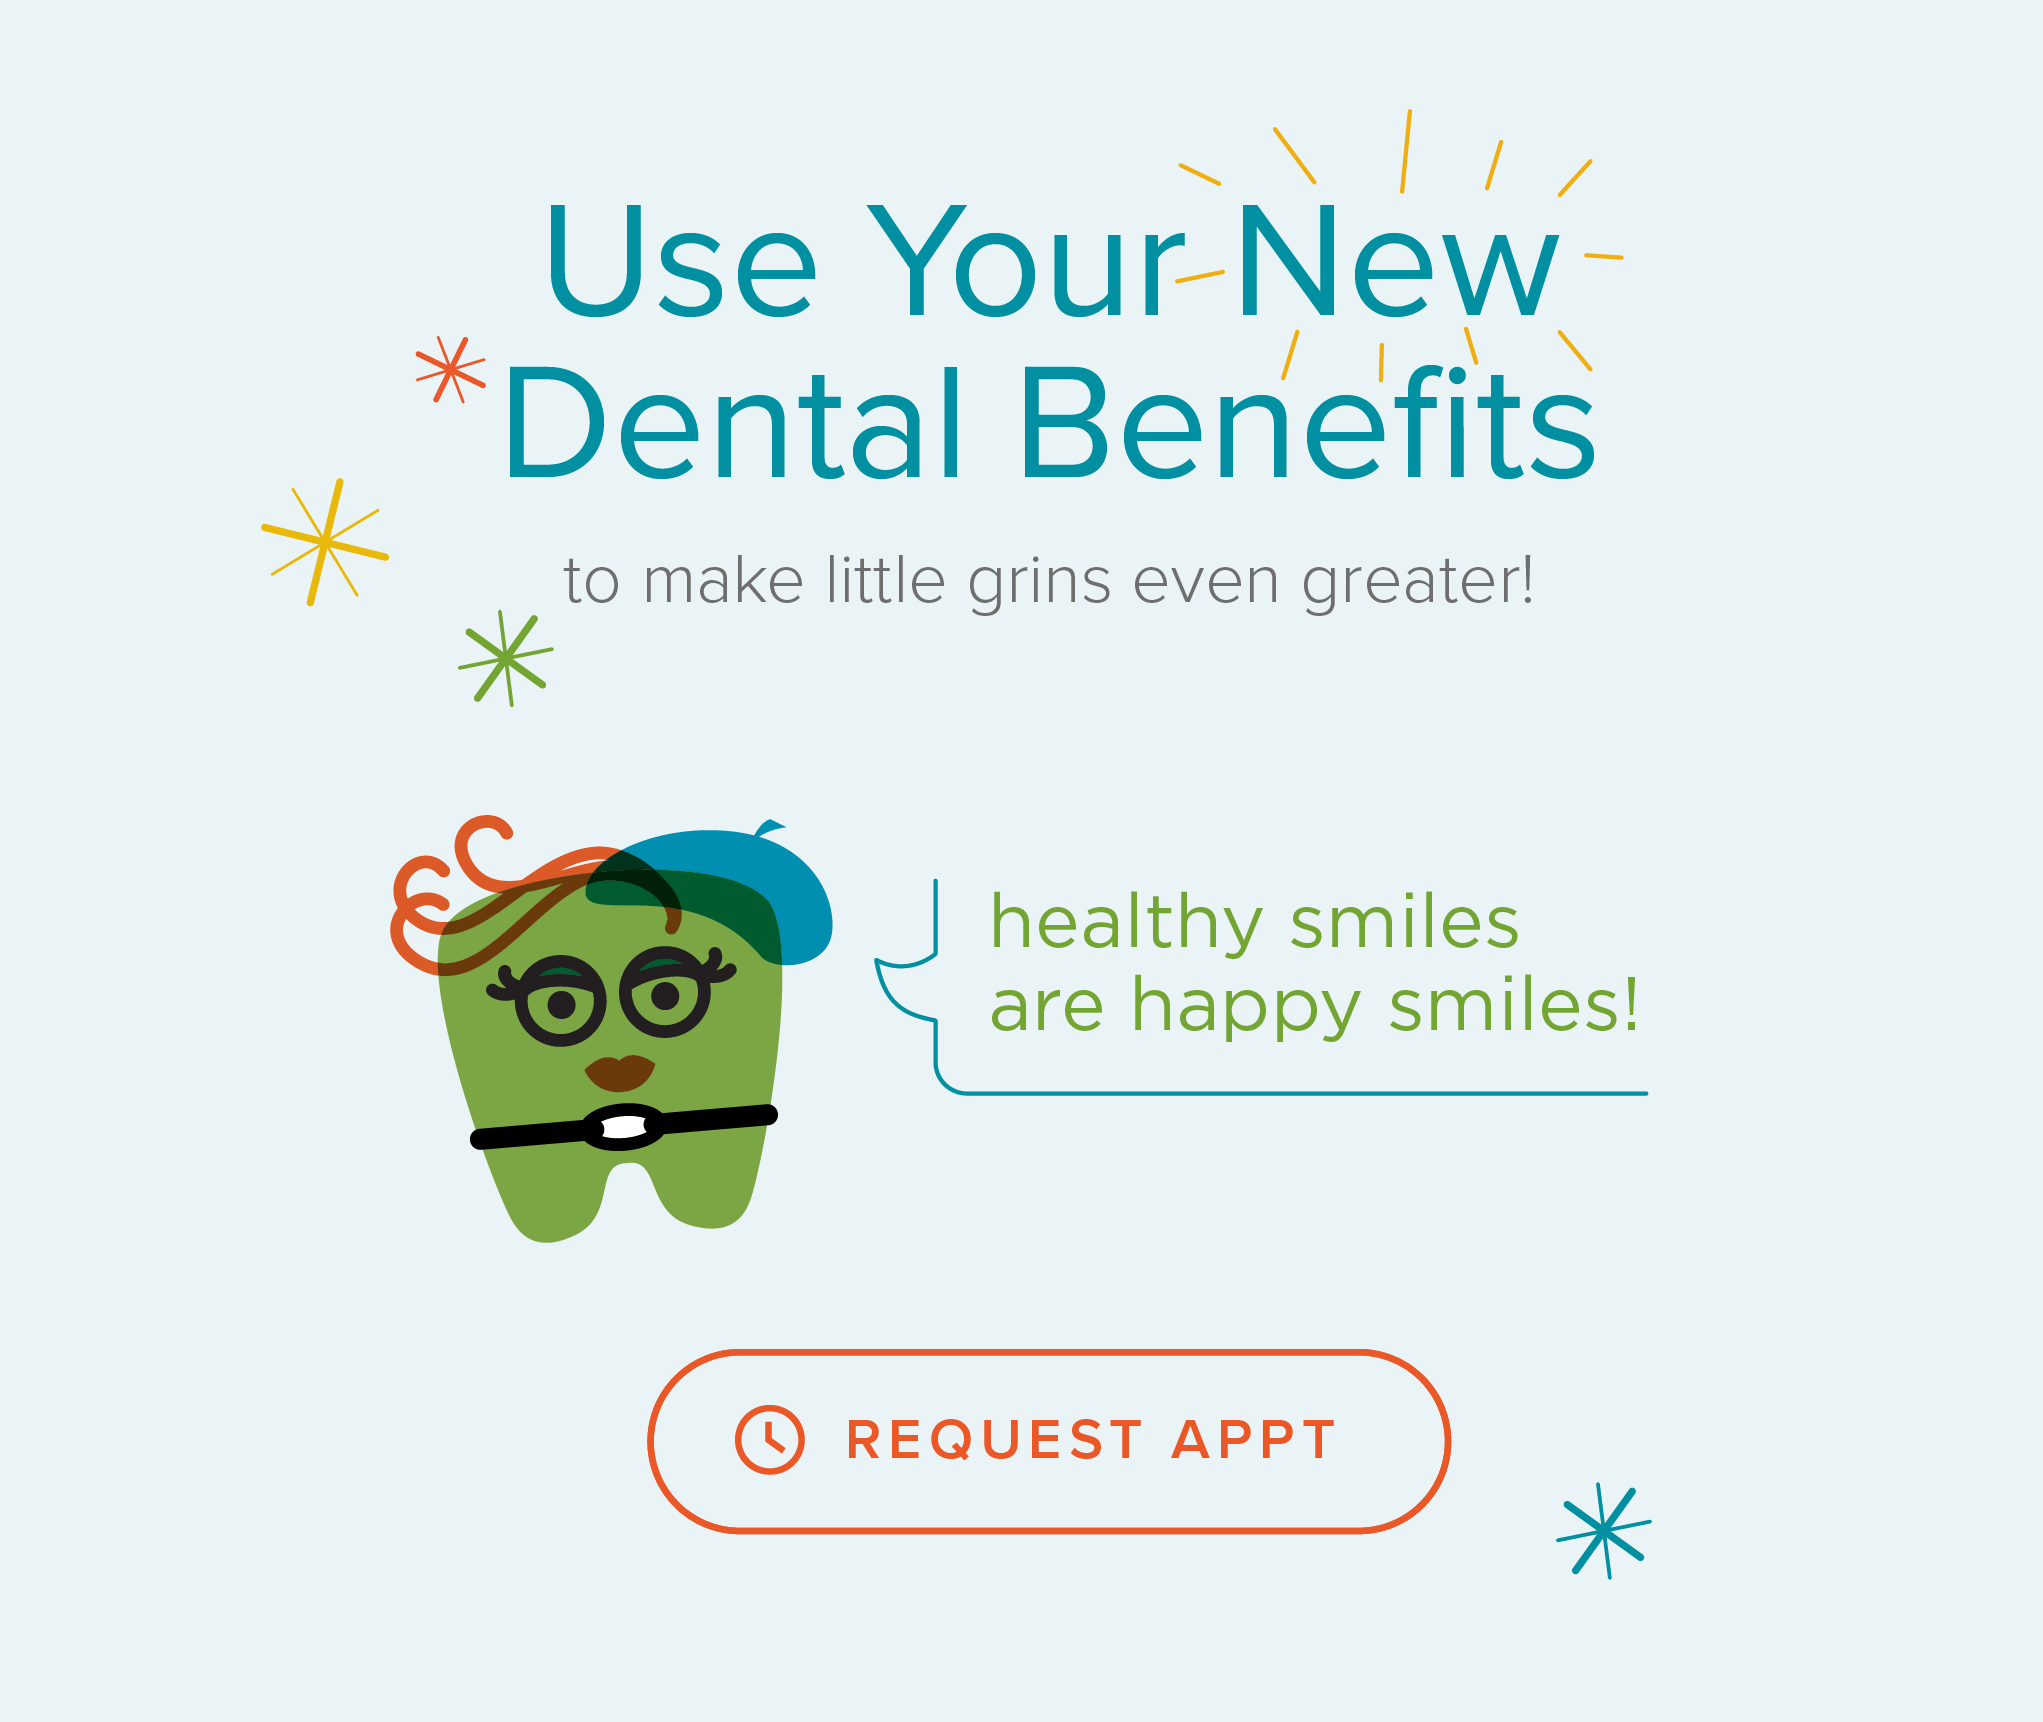 My Kid's Dentist - Use Your New Dental Benefits